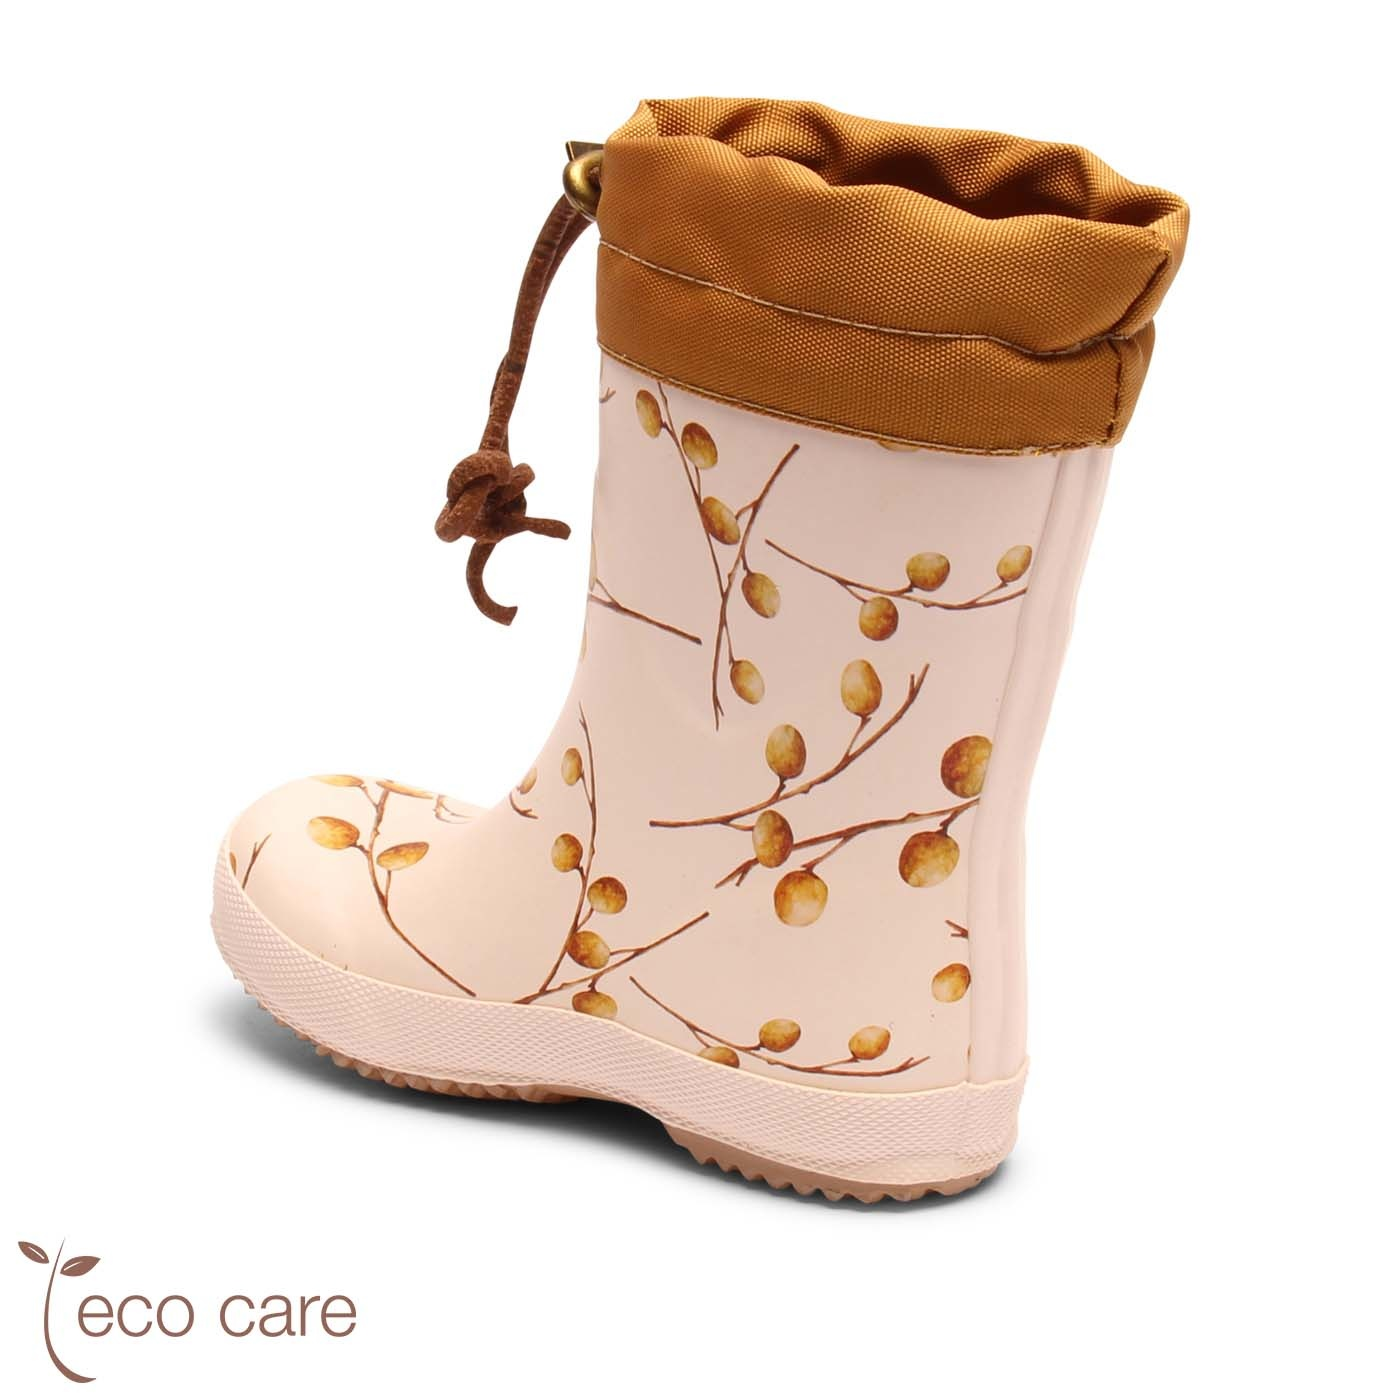 BISGAARD eco thermo boot - wool lined rainboot - natural rubber LONGAN FRUIT - 22 to 38